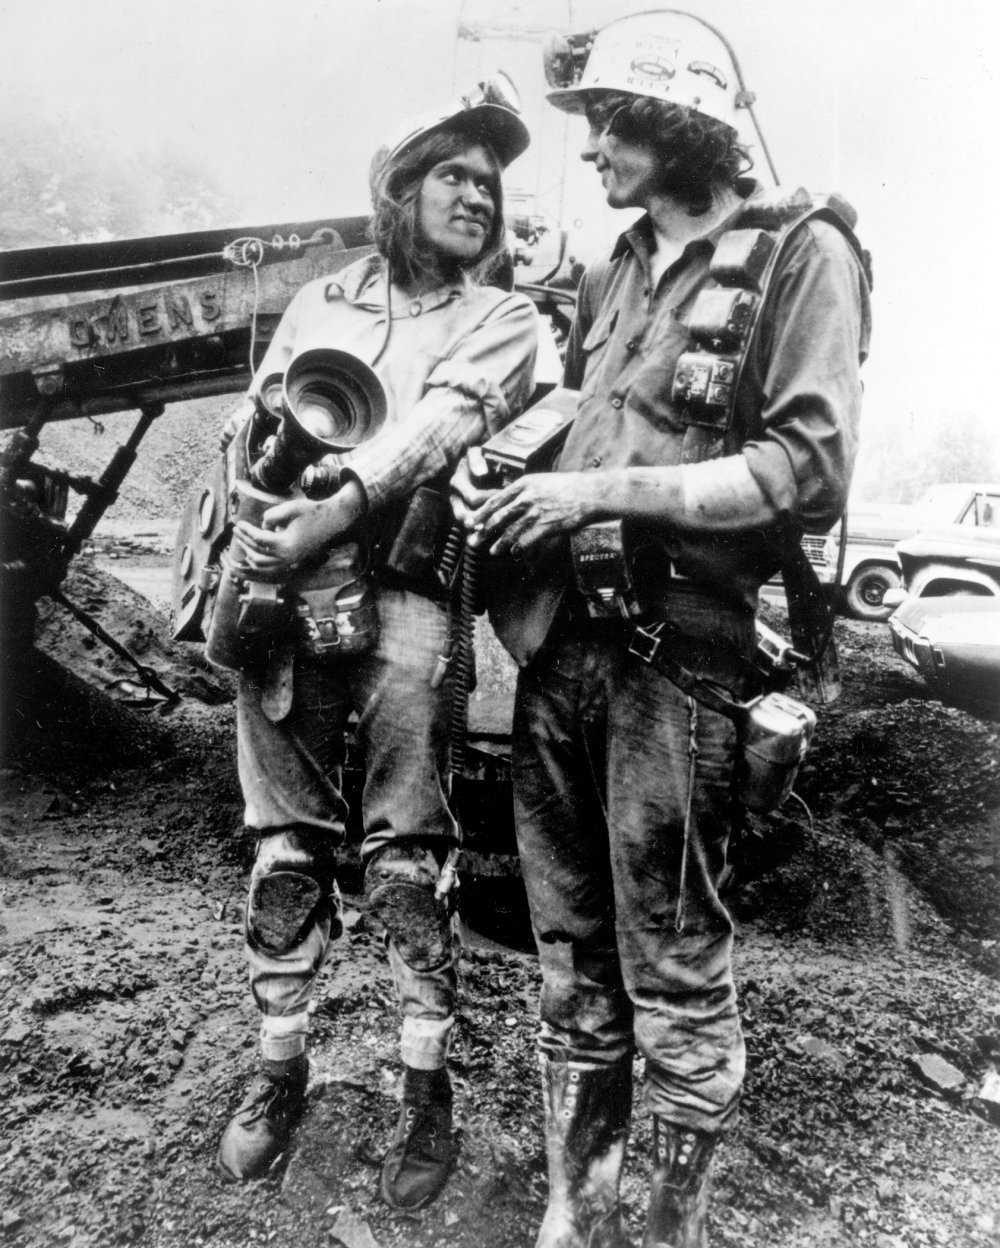 Barbara Kopple and cinematographer Hart Perry shooting Harlan County U.S.A. (1976)